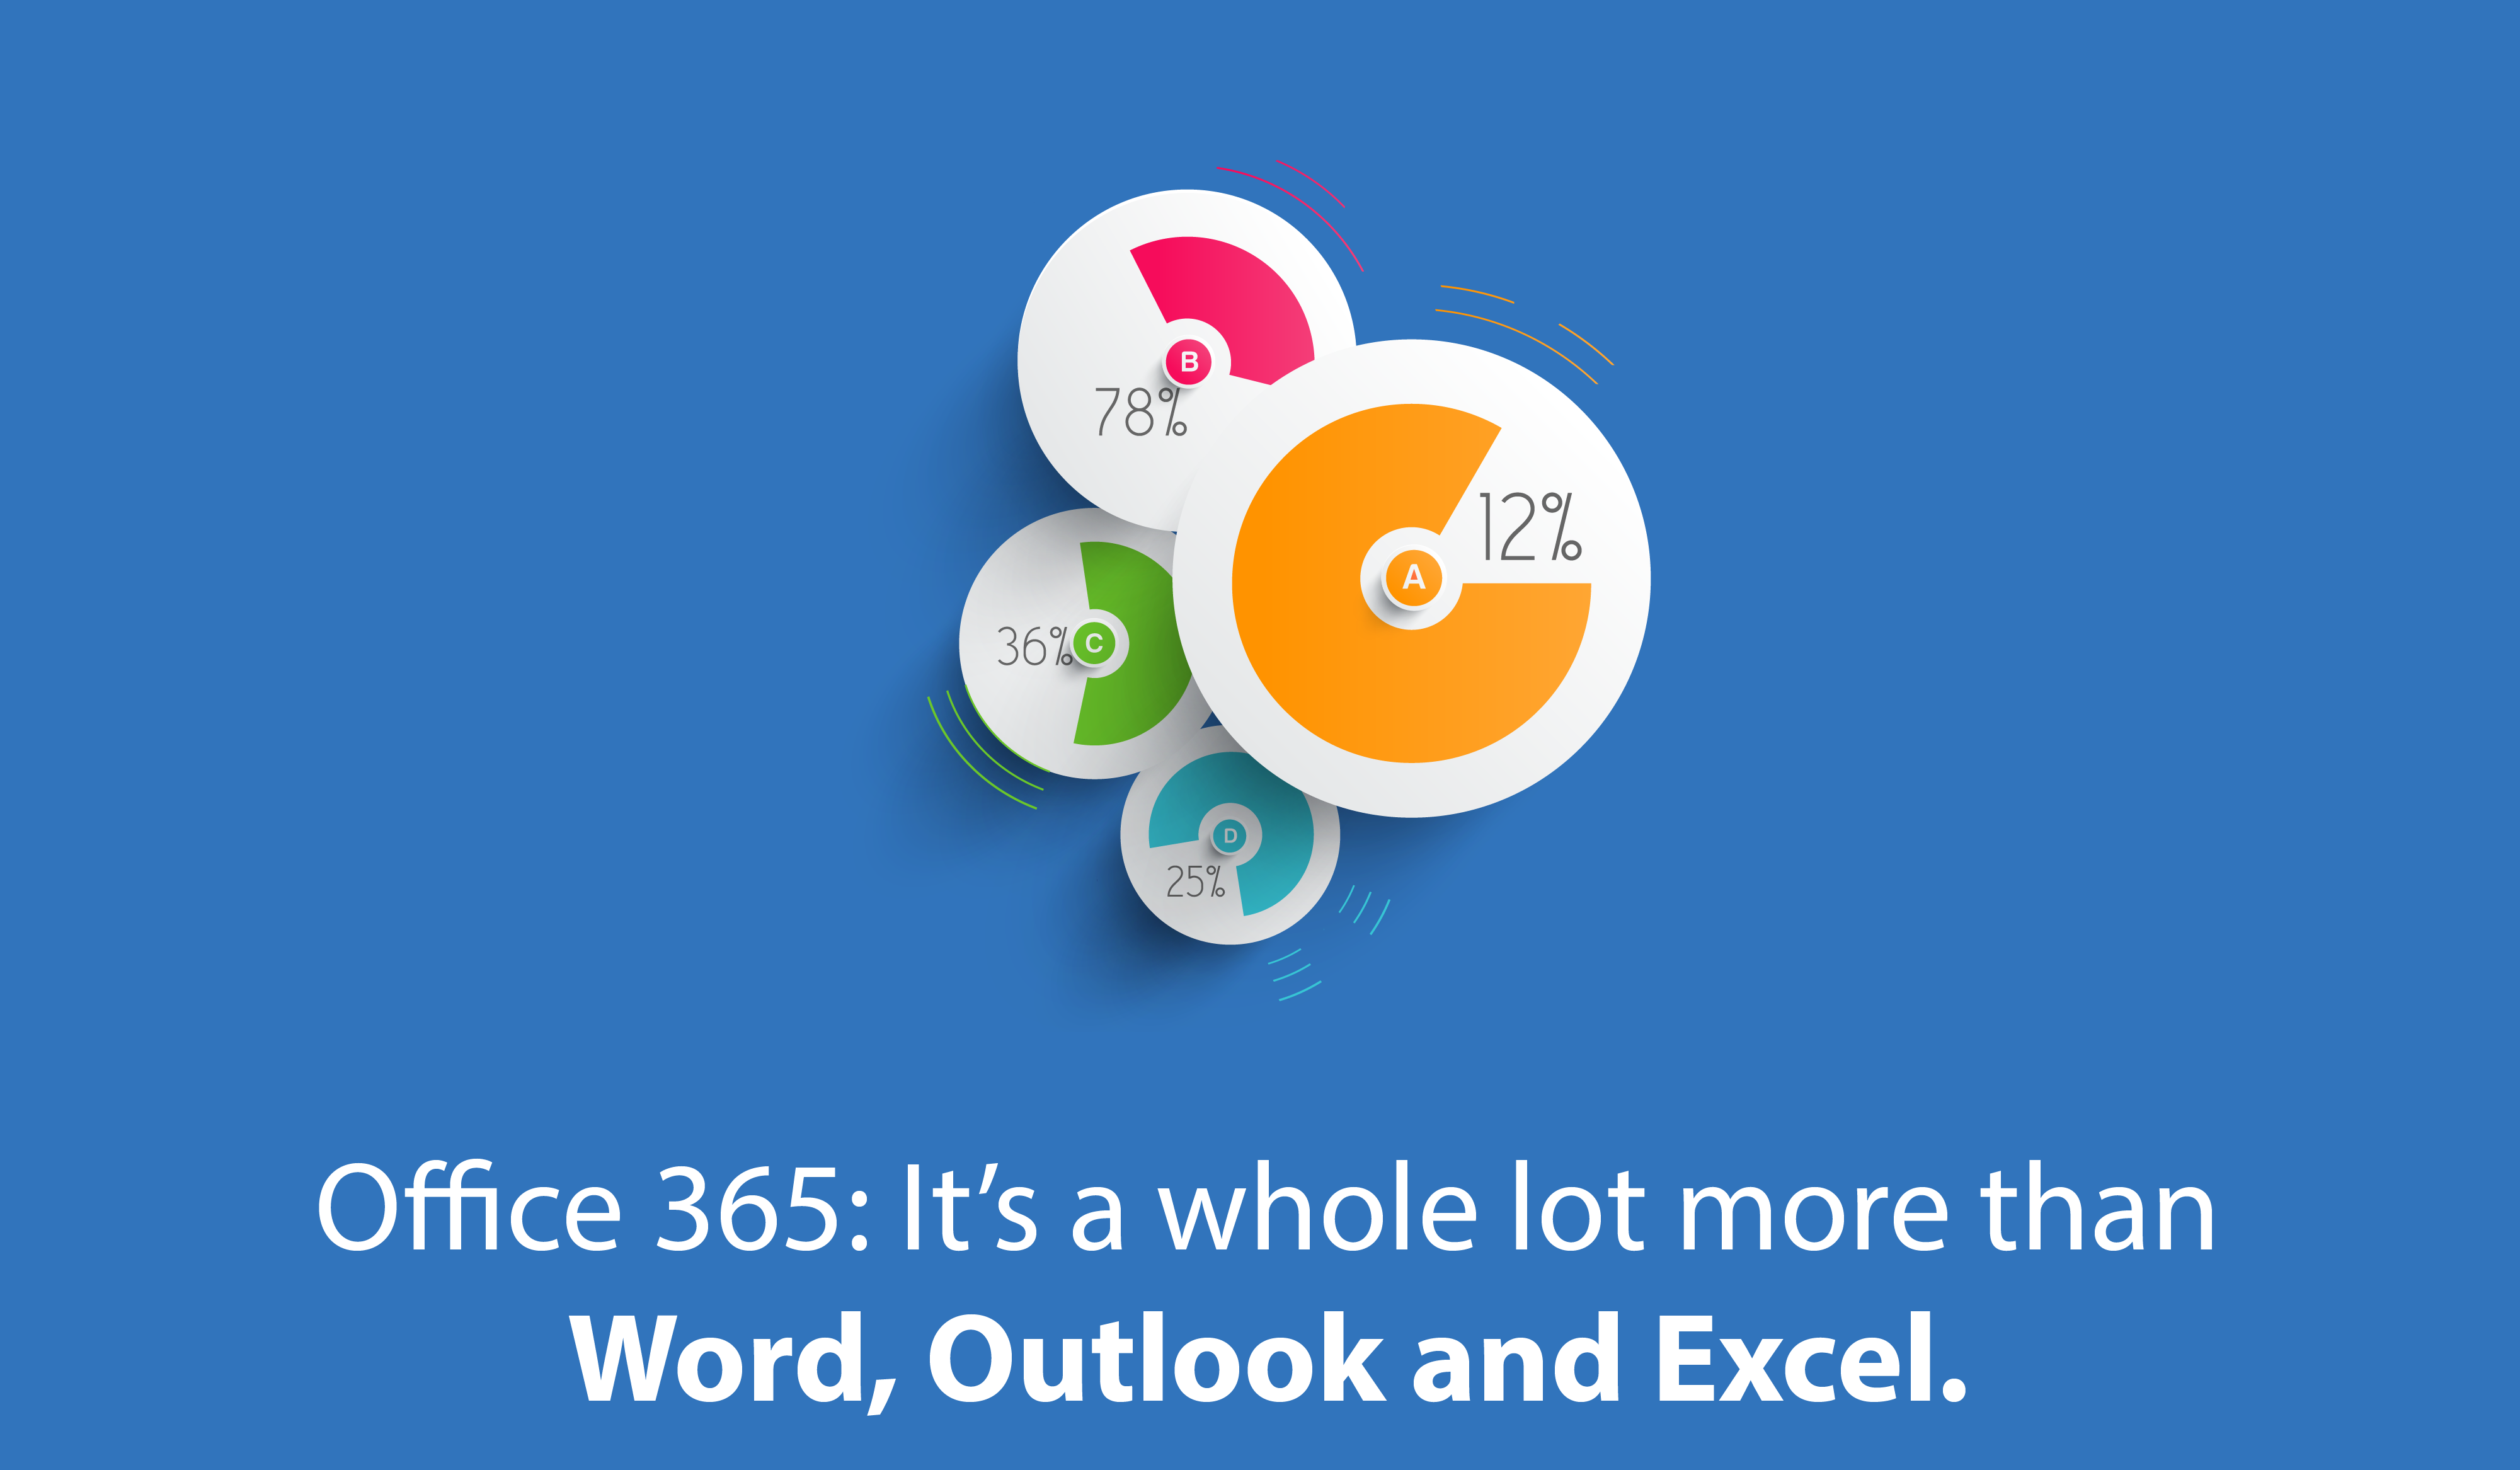 Office 365 – It's a whole lot more than Word, Outlook and Excel.